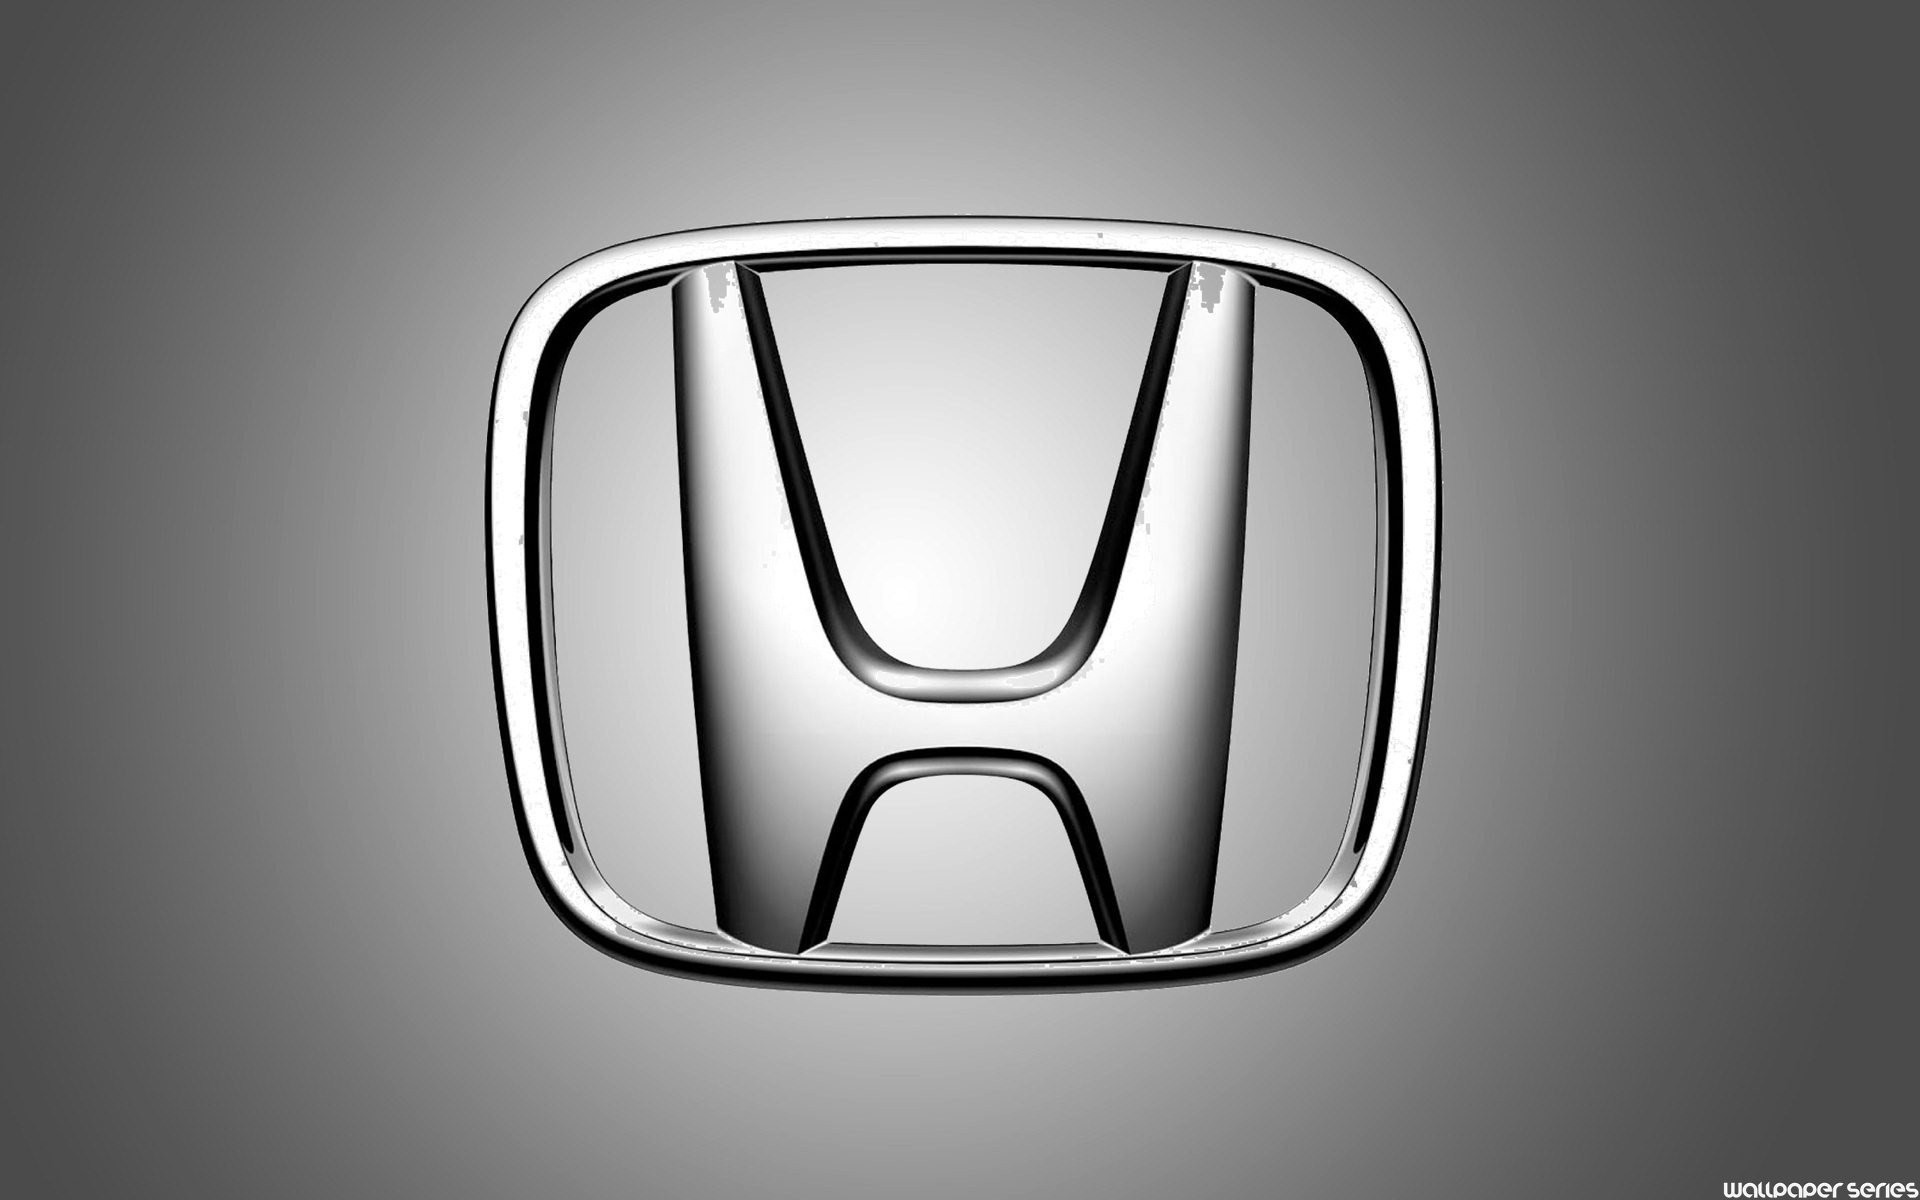 Eps Honda Civic Honda Logo Vector Ai Free Download Cr V